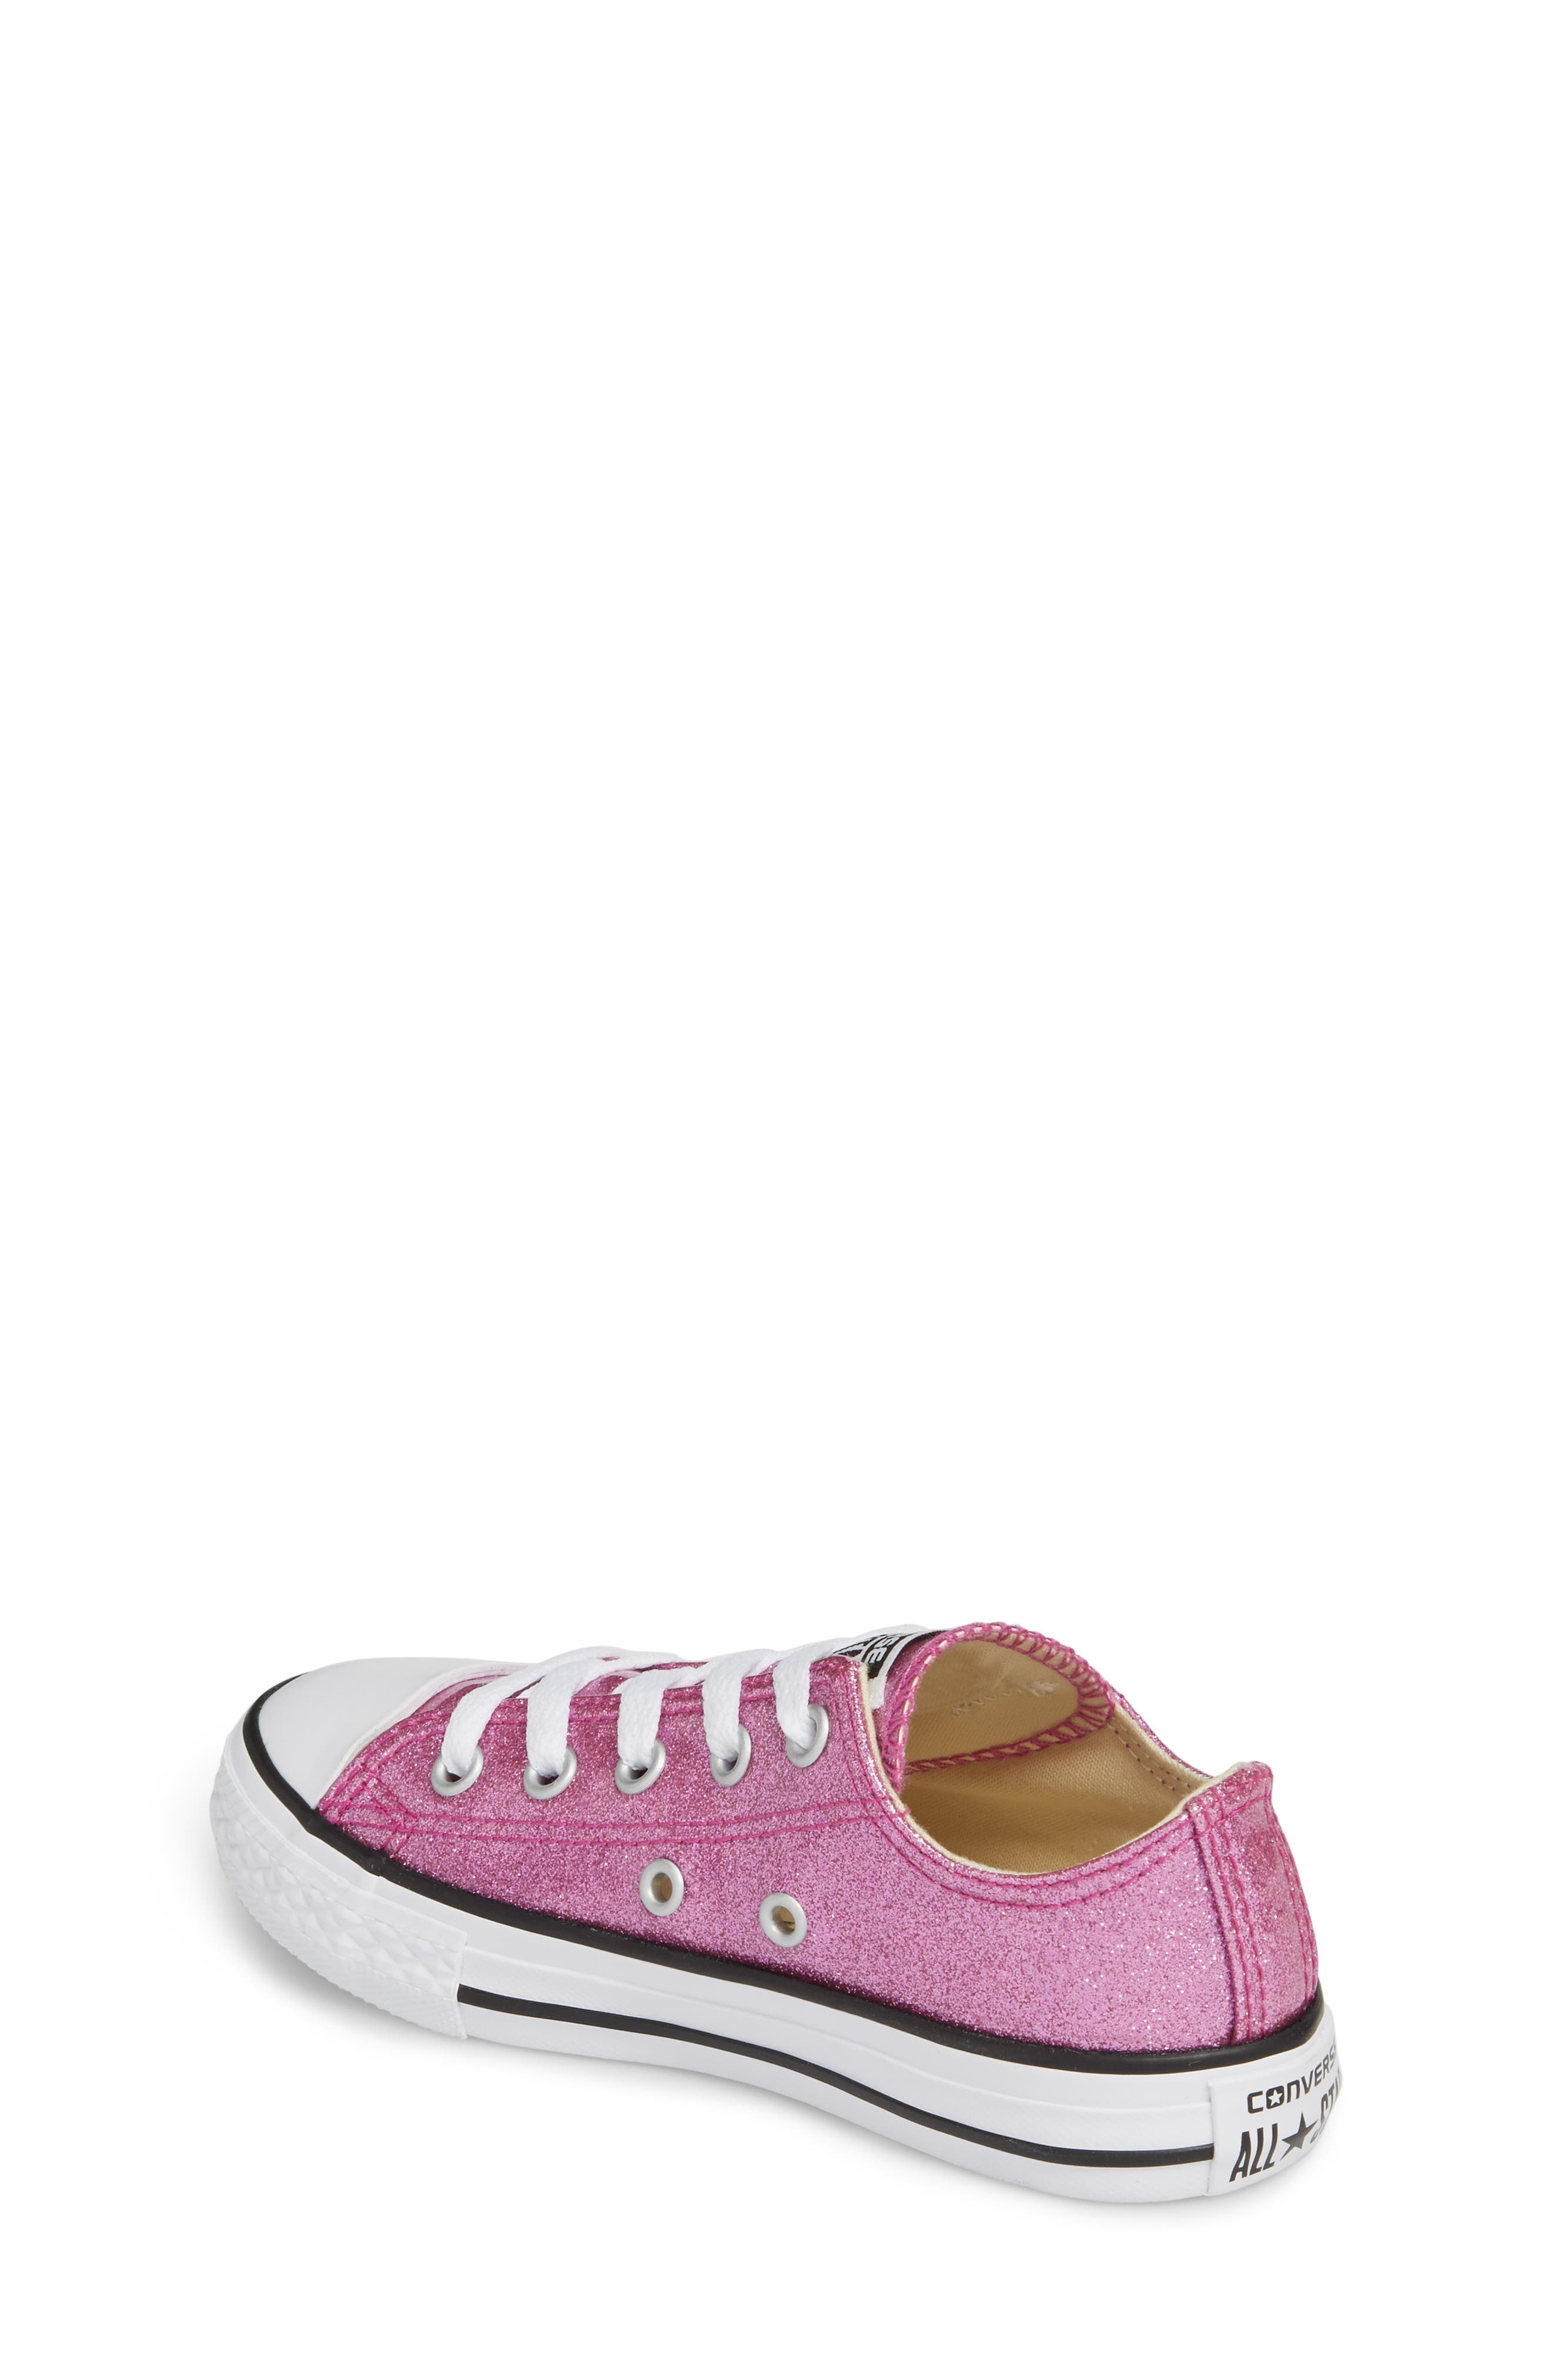 All Star<sup>®</sup> Seasonal Glitter OX Low Top Sneaker,                             Alternate thumbnail 2, color,                             Bright Violet